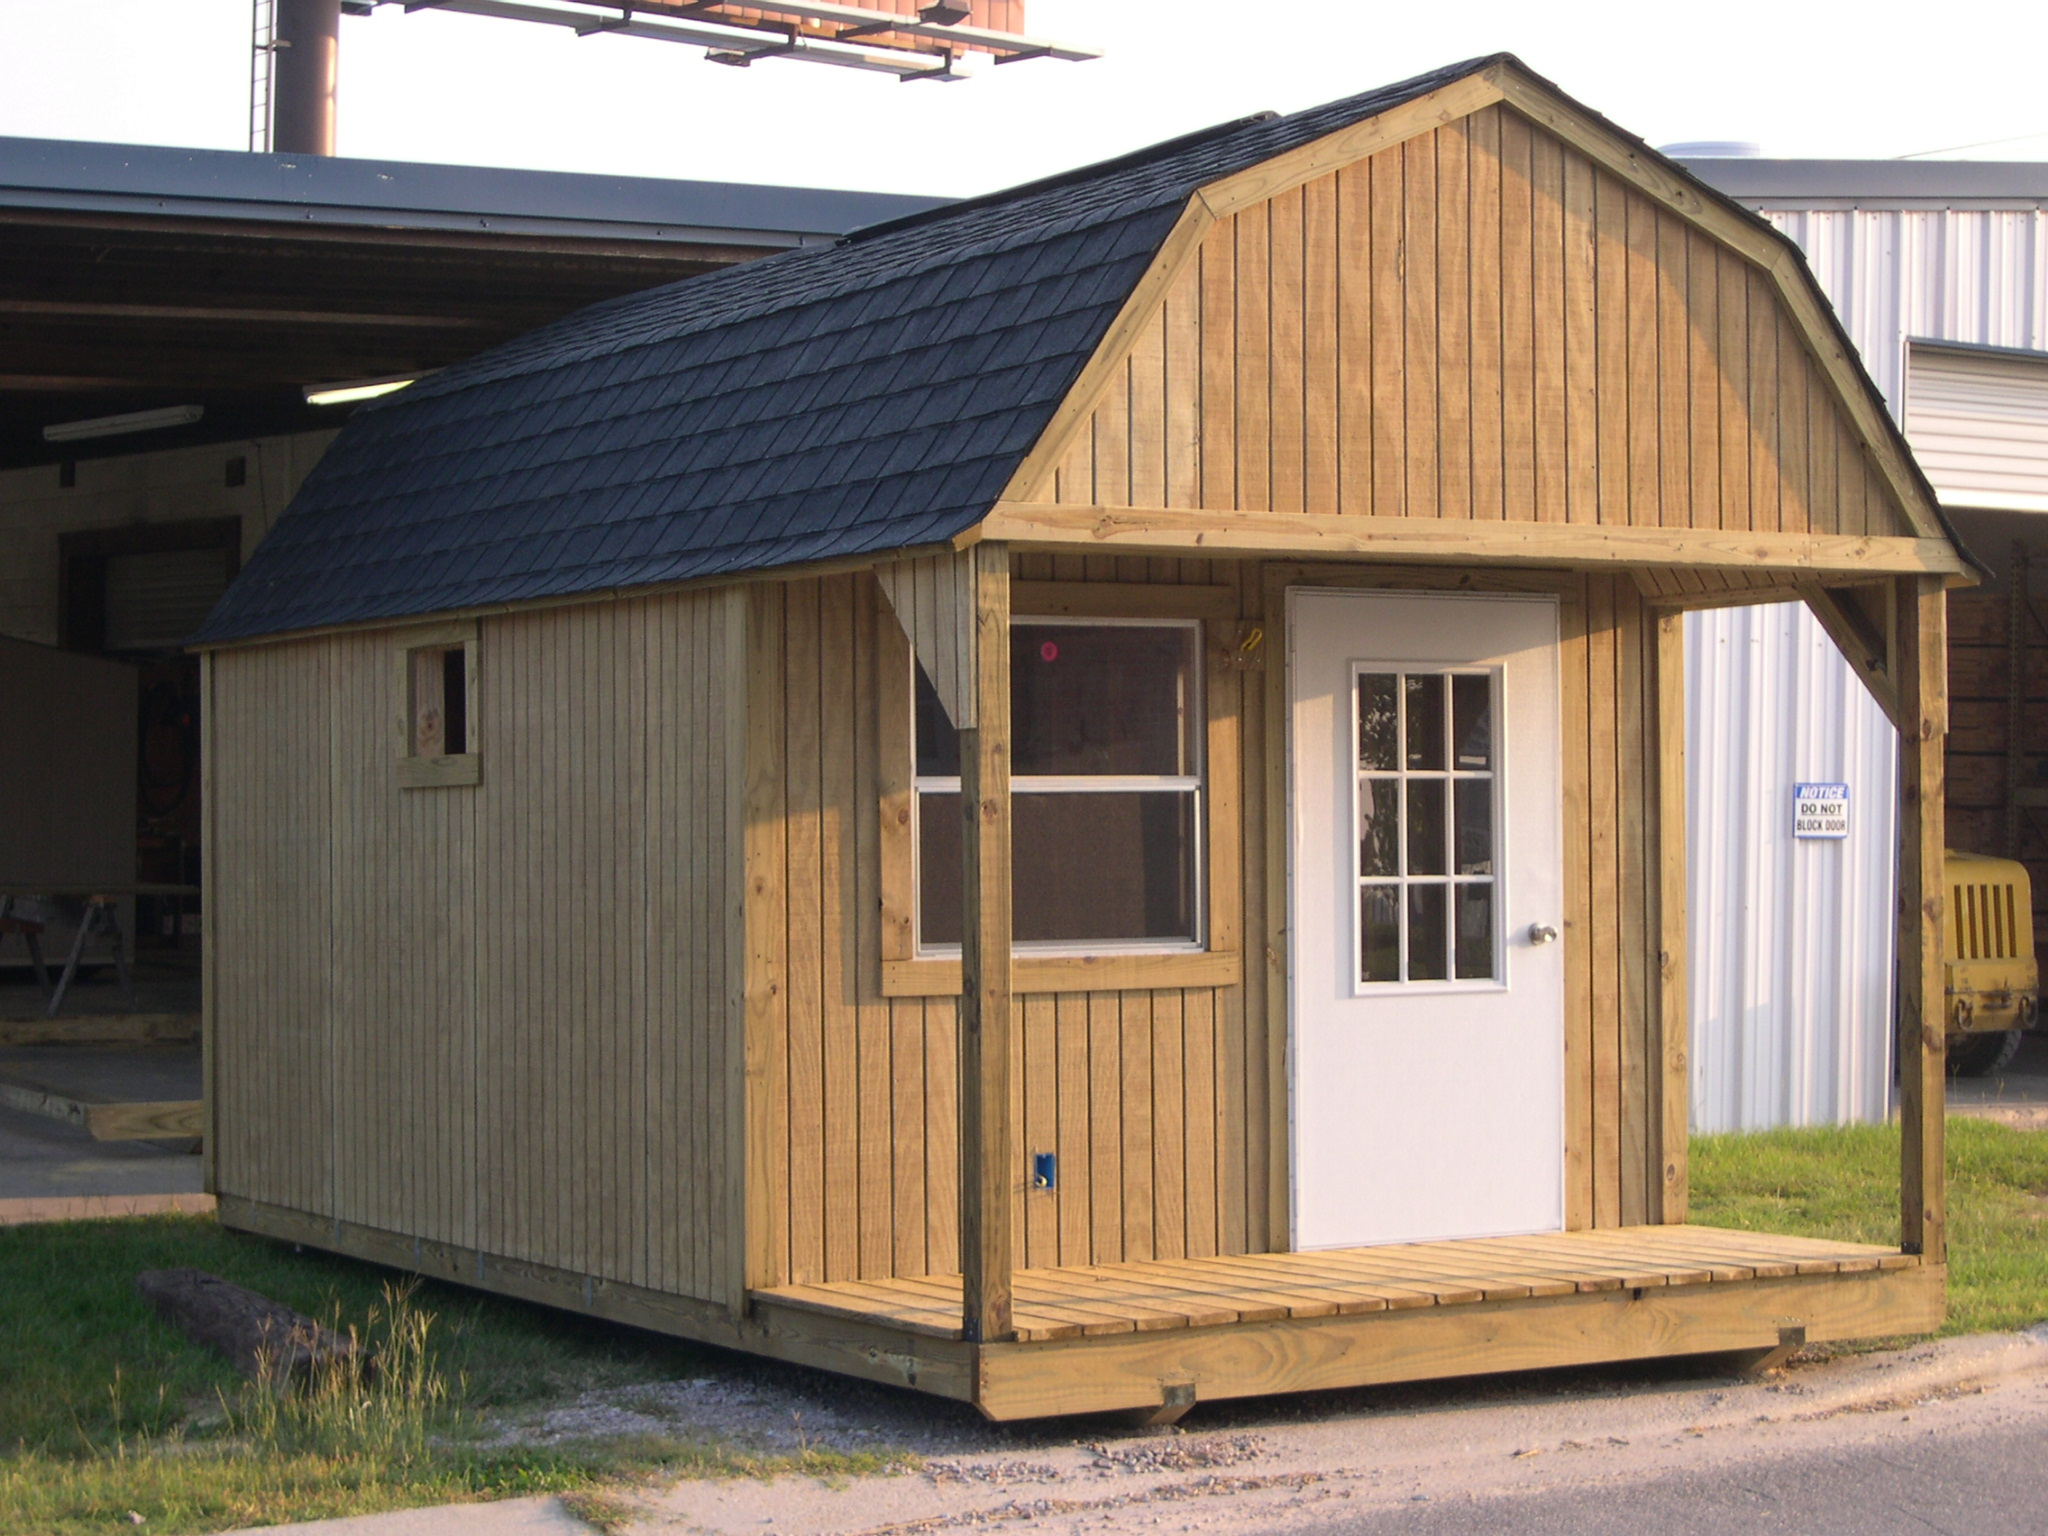 Storage Building Plans – Constructing Wood Storage Plans With ...